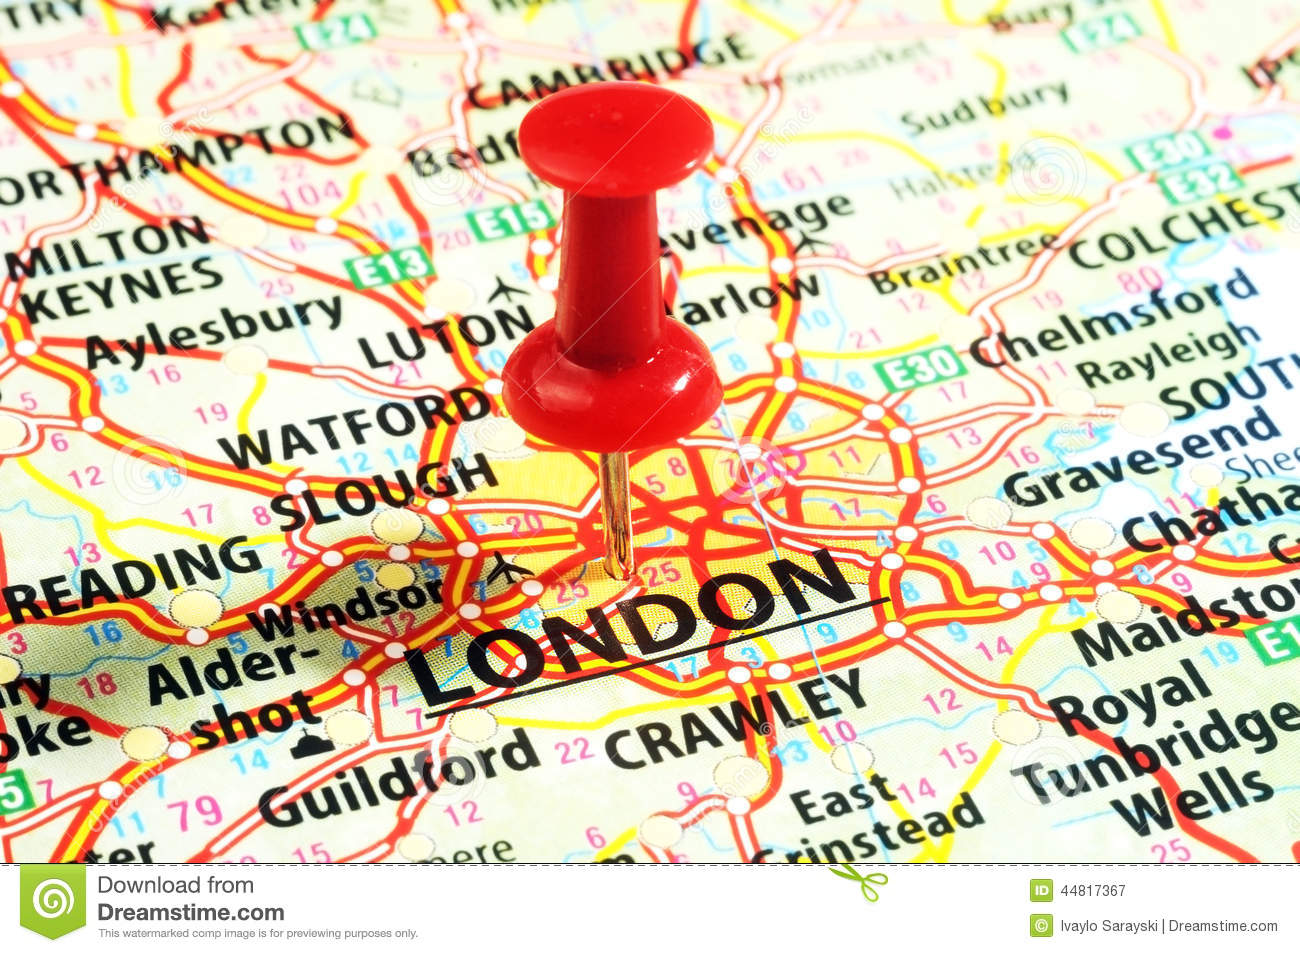 London ,UK map pin stock image. Image of place, thumbtack ... on london monitor, london united kingdom, europe map, lima peru map, london on a map, london suburbs map, tokyo japan map, london norway map, london germany map, bay of plenty new zealand map, roman jerusalem map, london tn map, united kingdom map, london tube map, london sky pool, london england, madrid spain map, london fallen angel, england map, london rex,